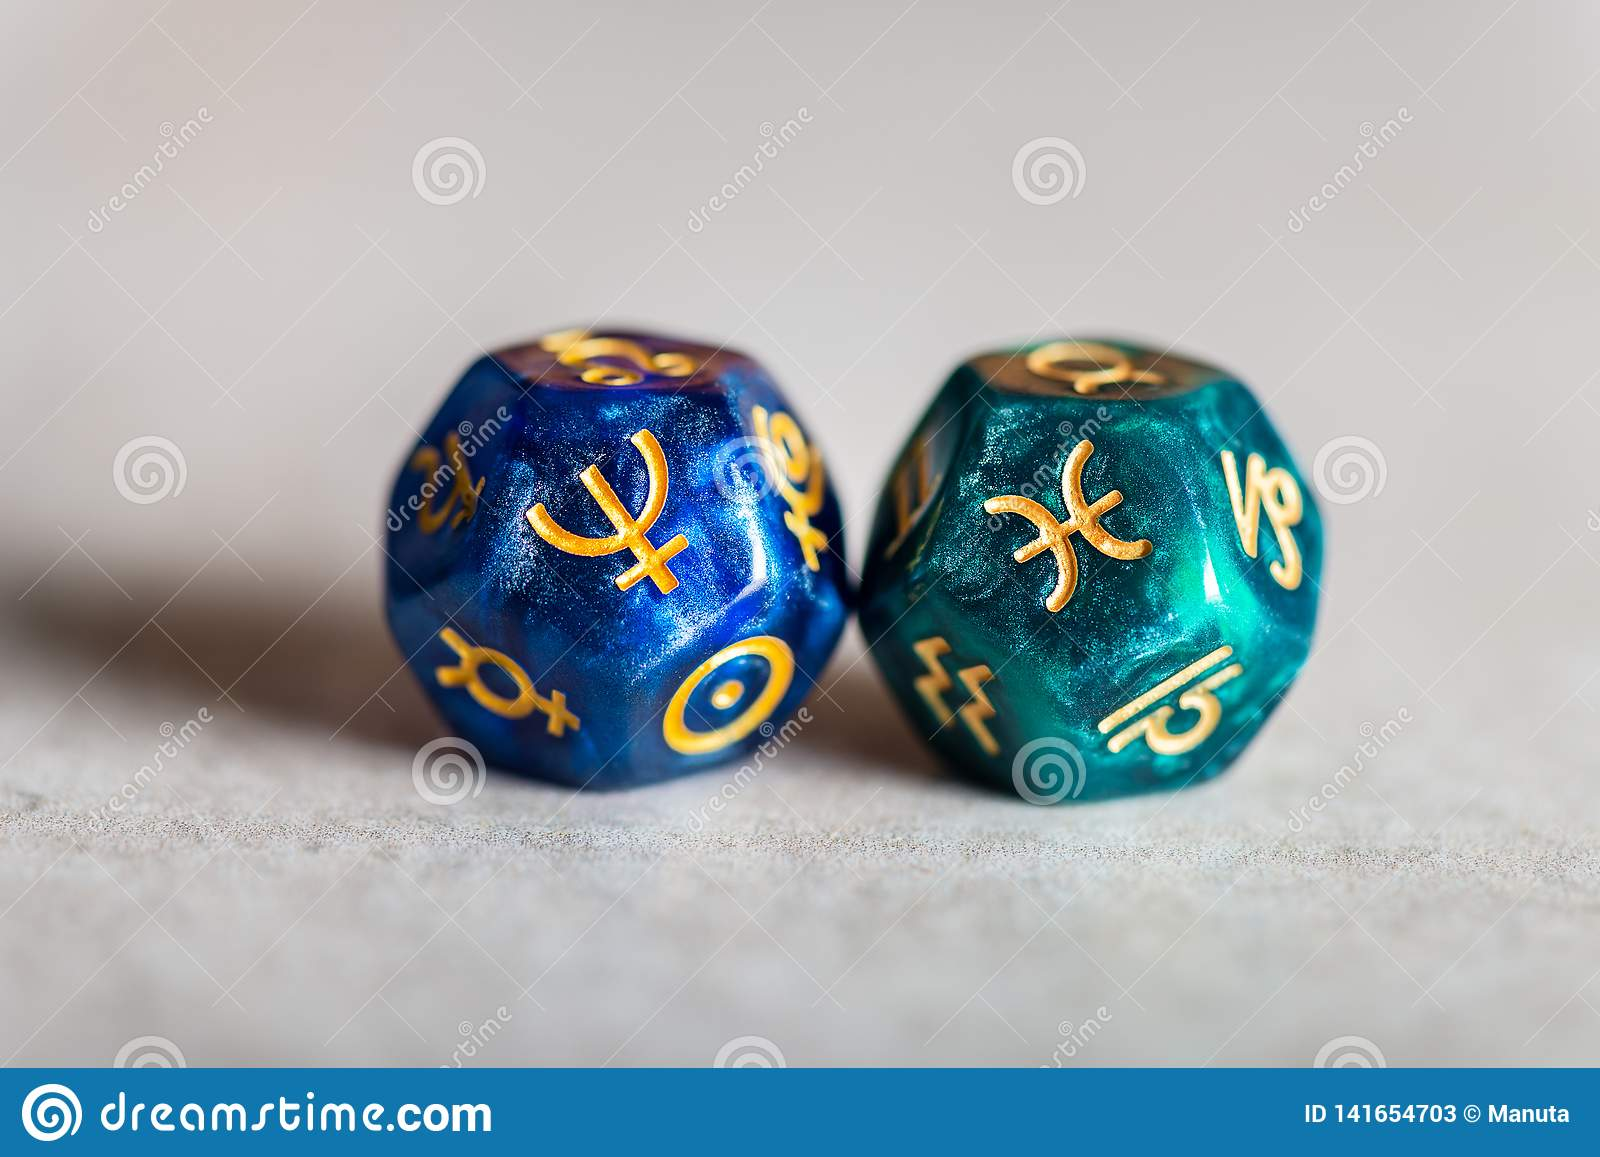 Astrology Dice with zodiac symbol of Pisces and its ruling planet Neptune